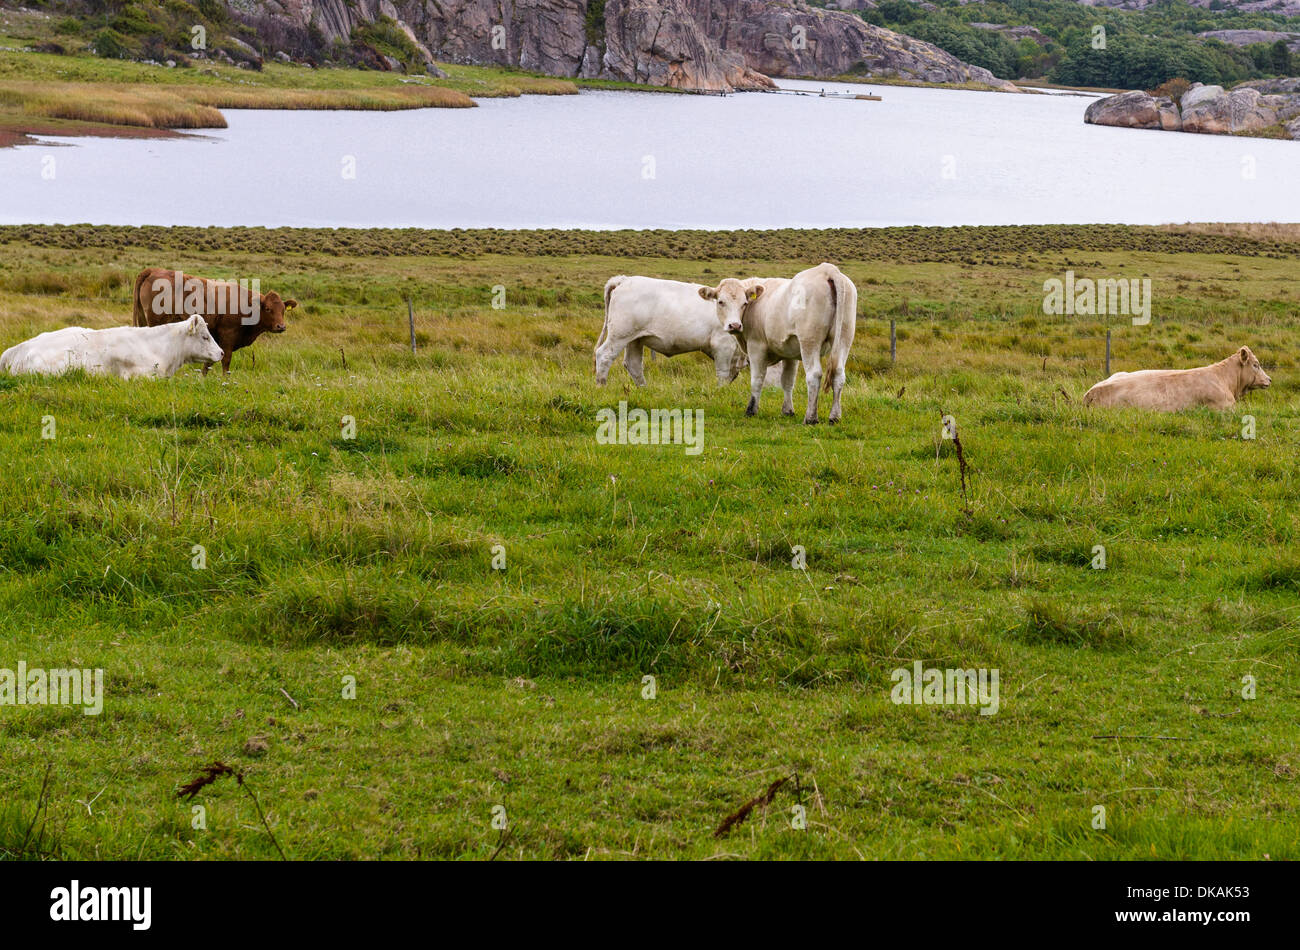 Cows with water in the background - Stock Image